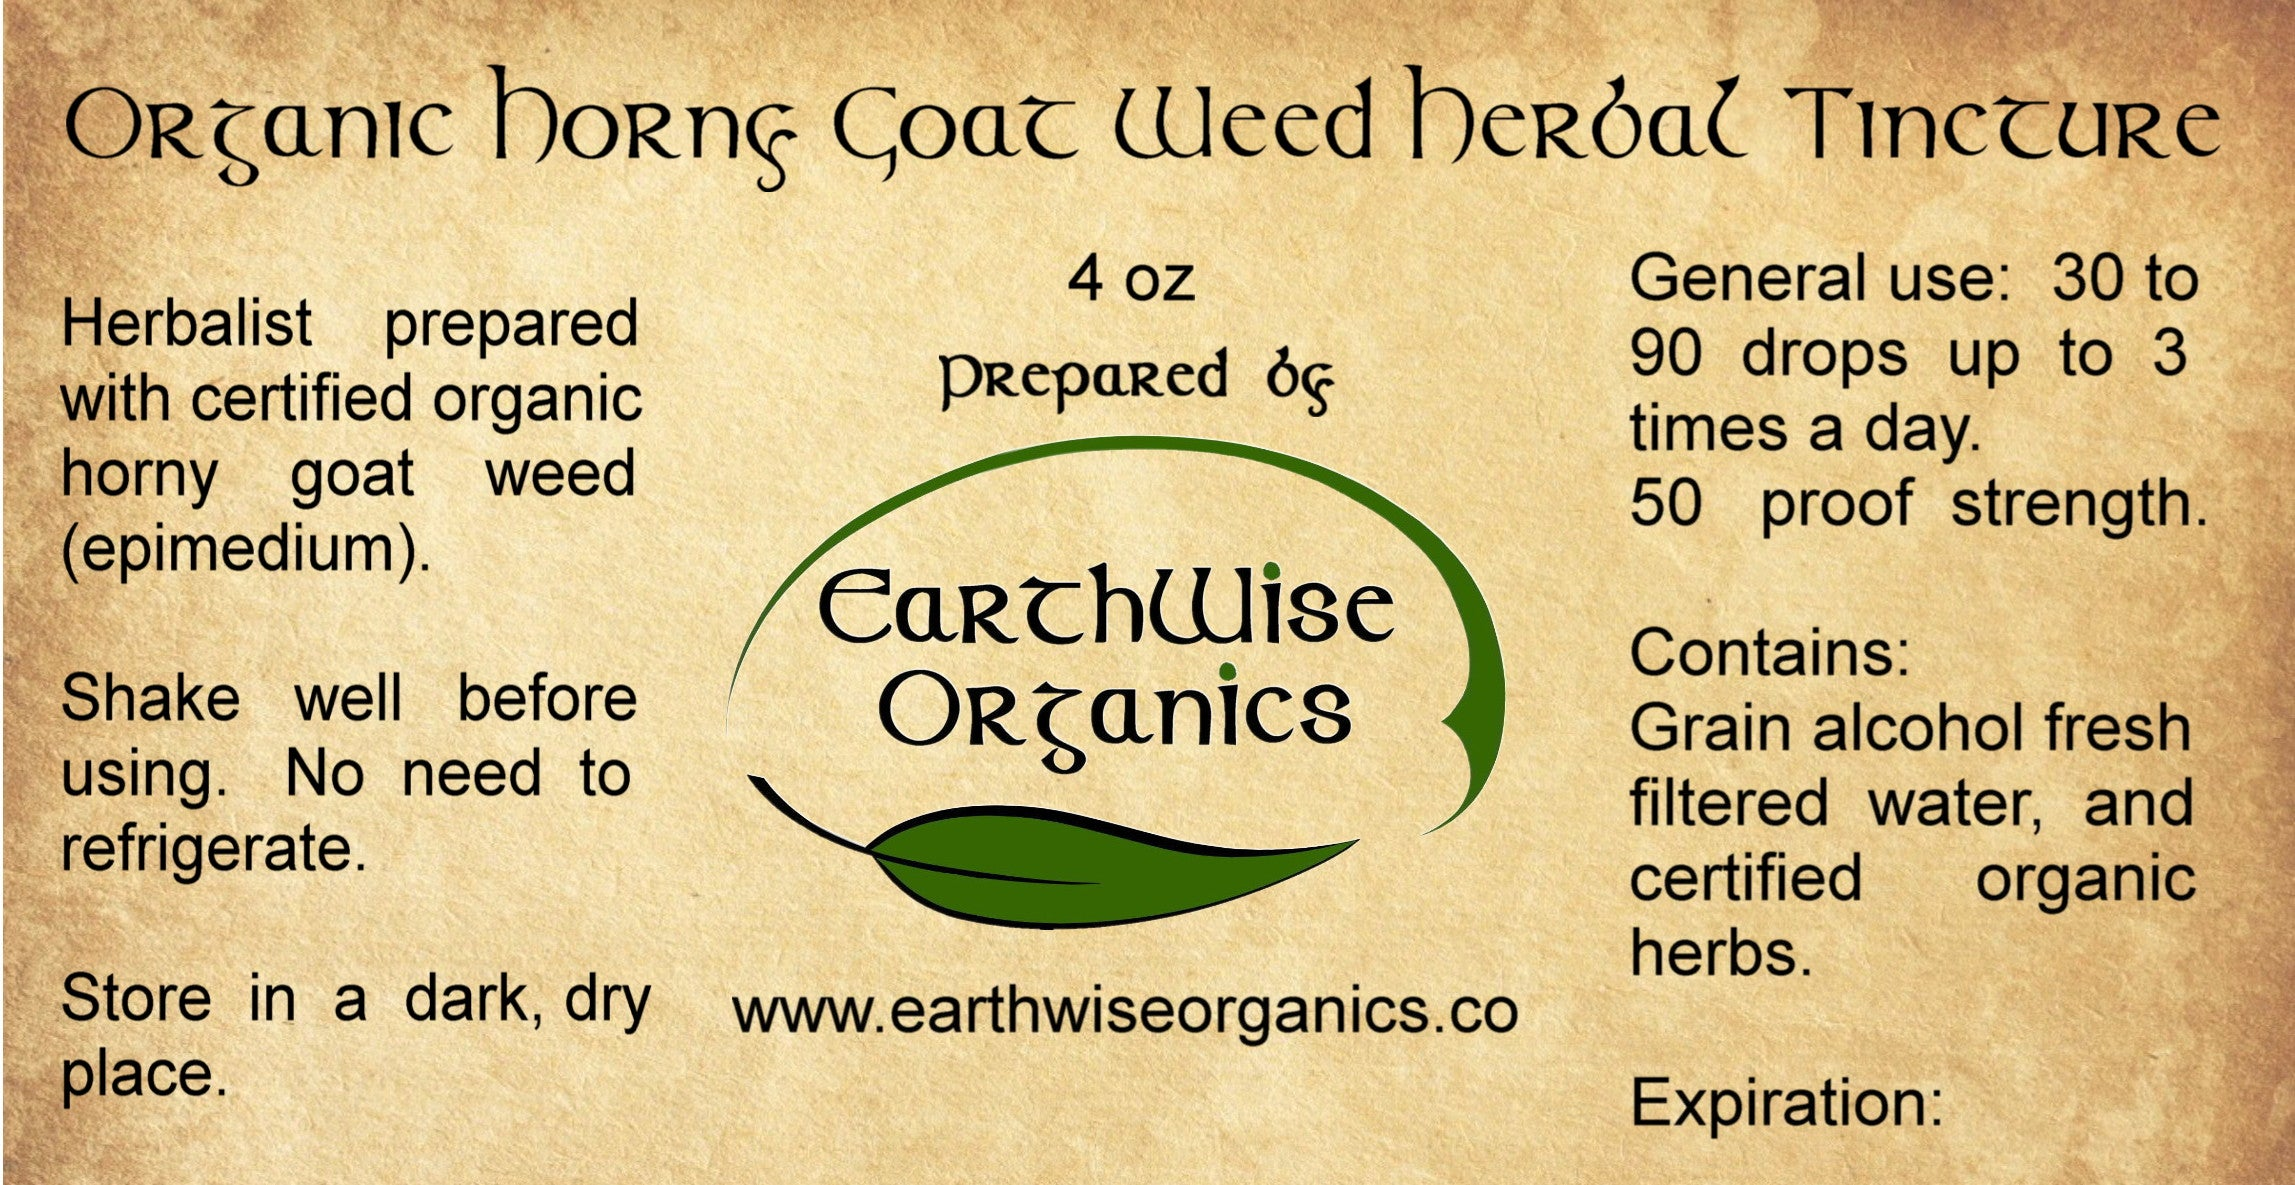 horny goat weed organic herbal tincture label